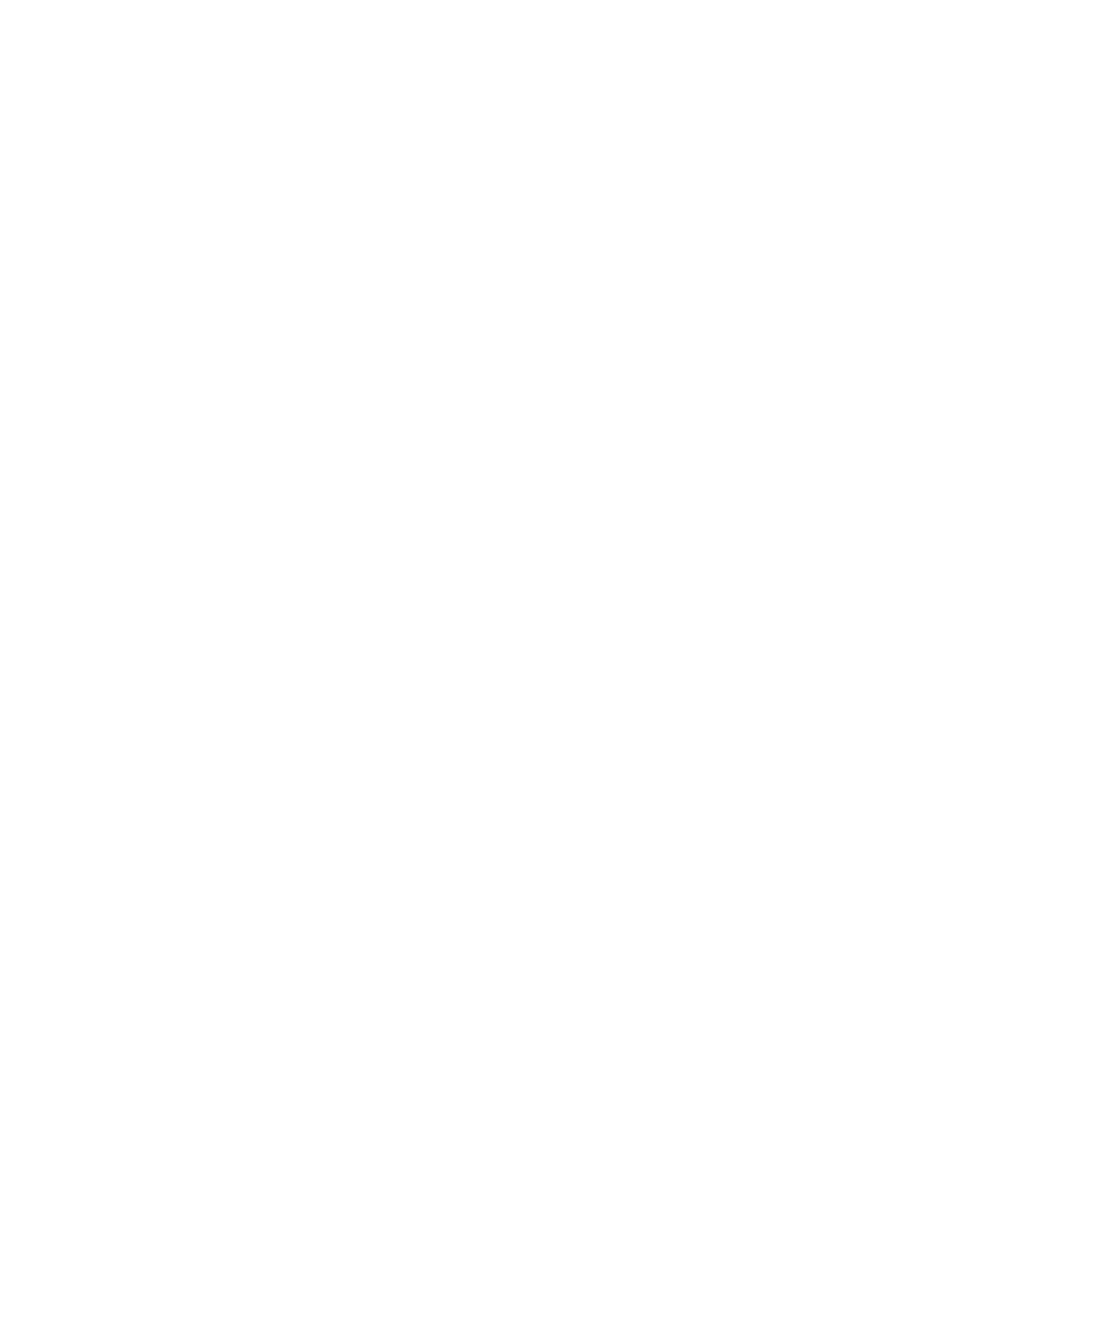 olla.png